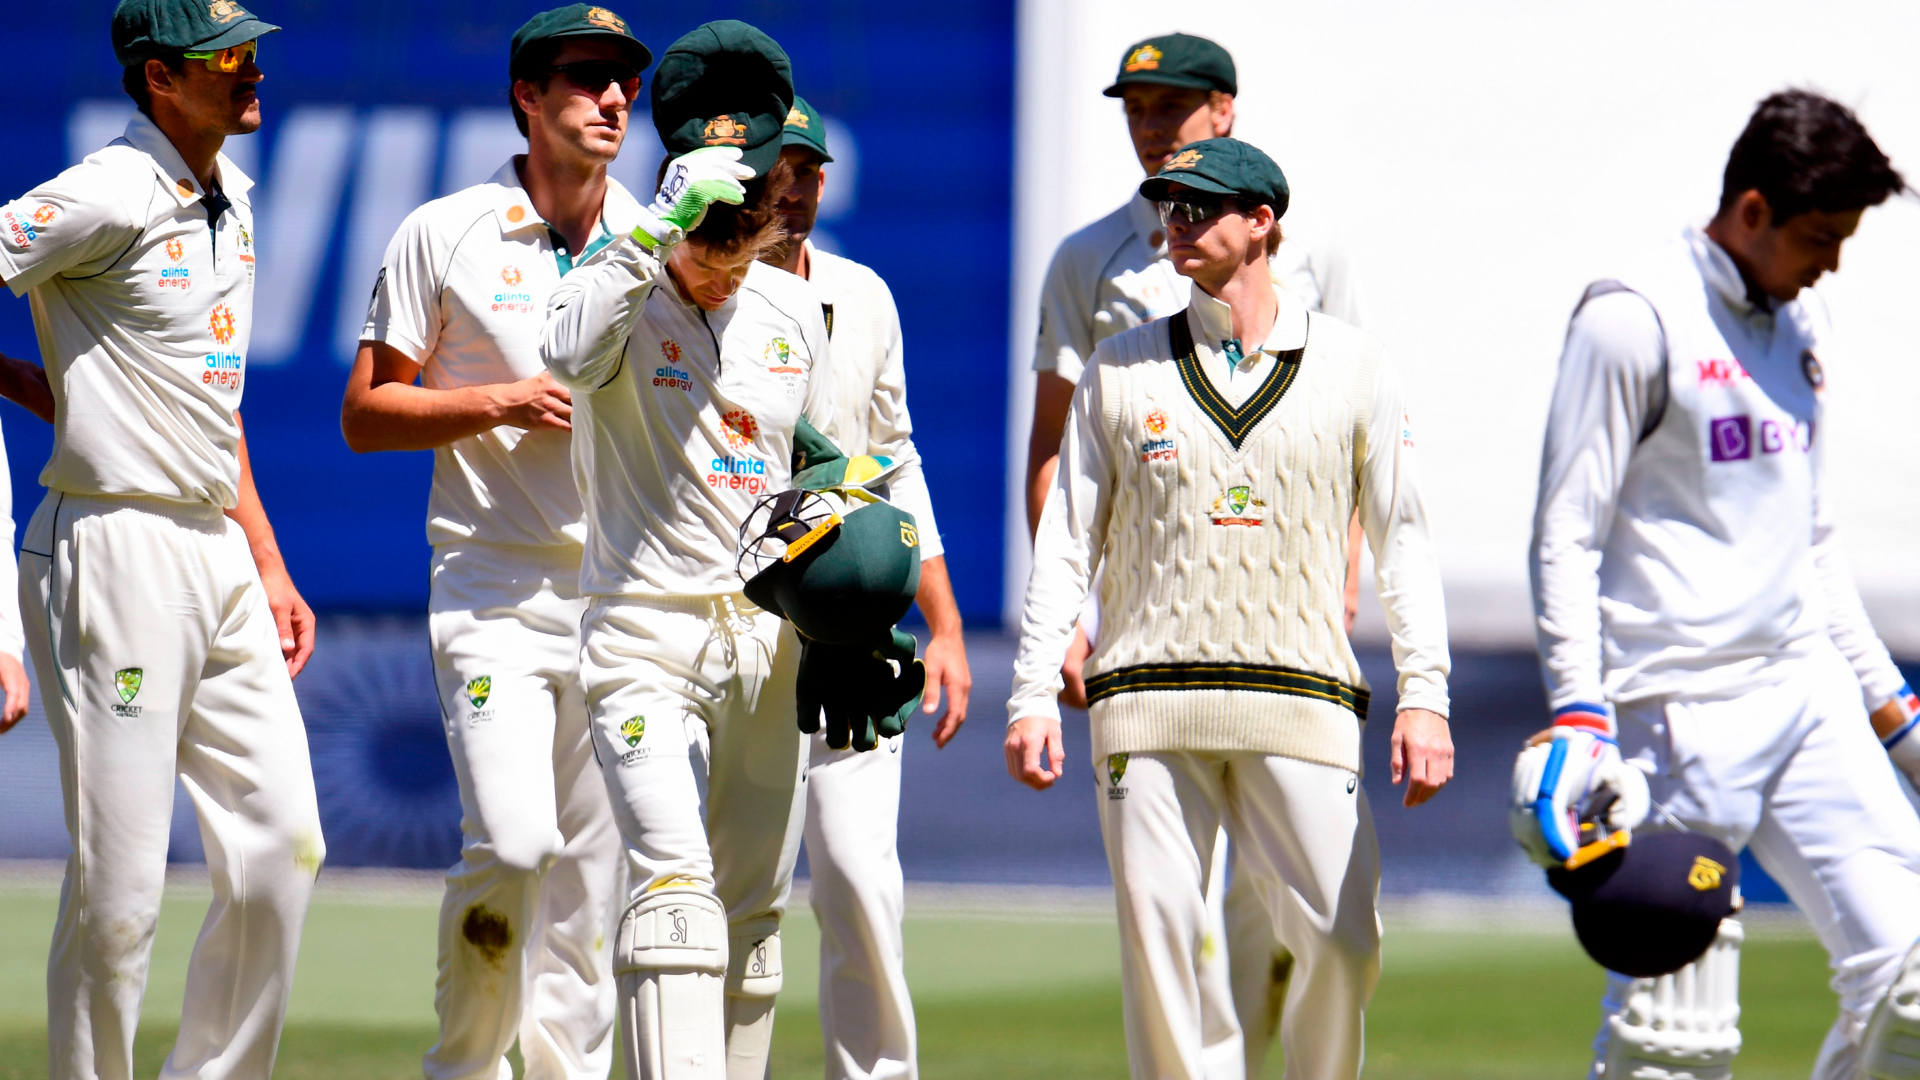 Paine says changes 'not necessarily' needed to fix Australia batting woes